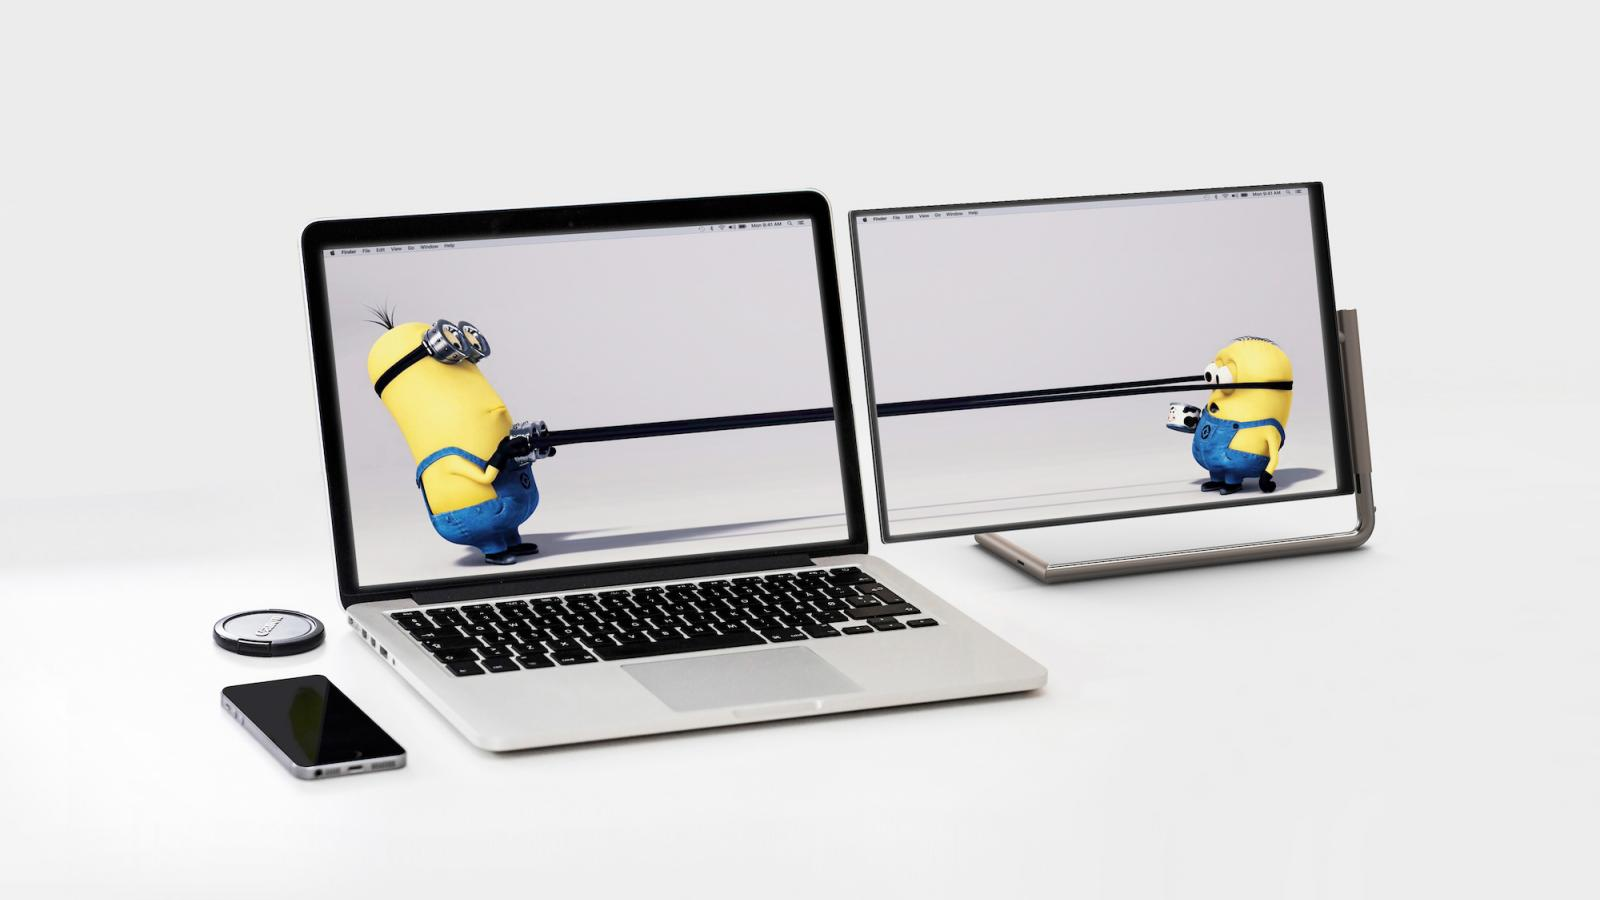 Industrial Design: L-Rod Monitor for your Laptop